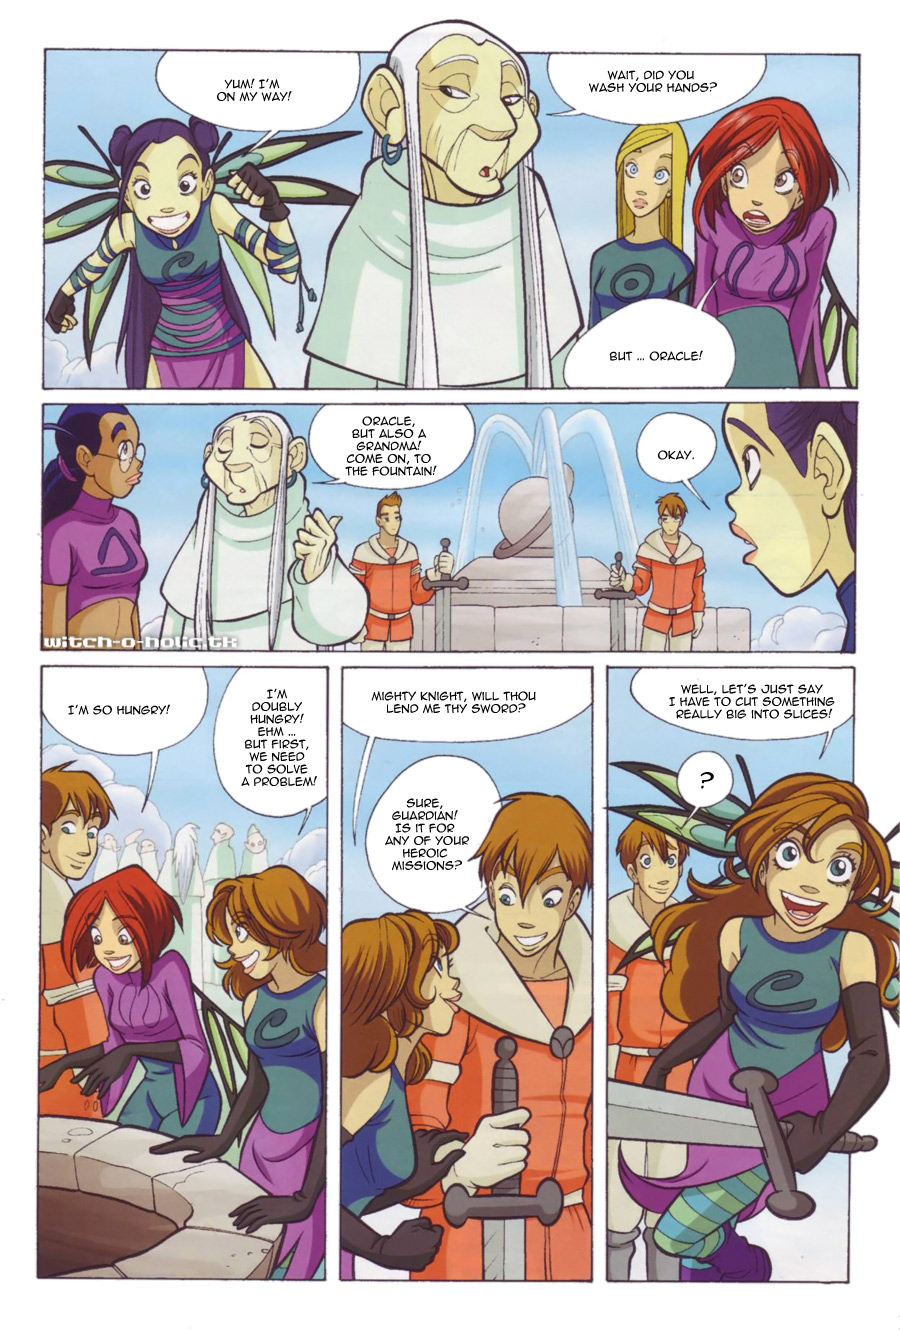 Read online W.i.t.c.h. comic -  Issue #139 - 10